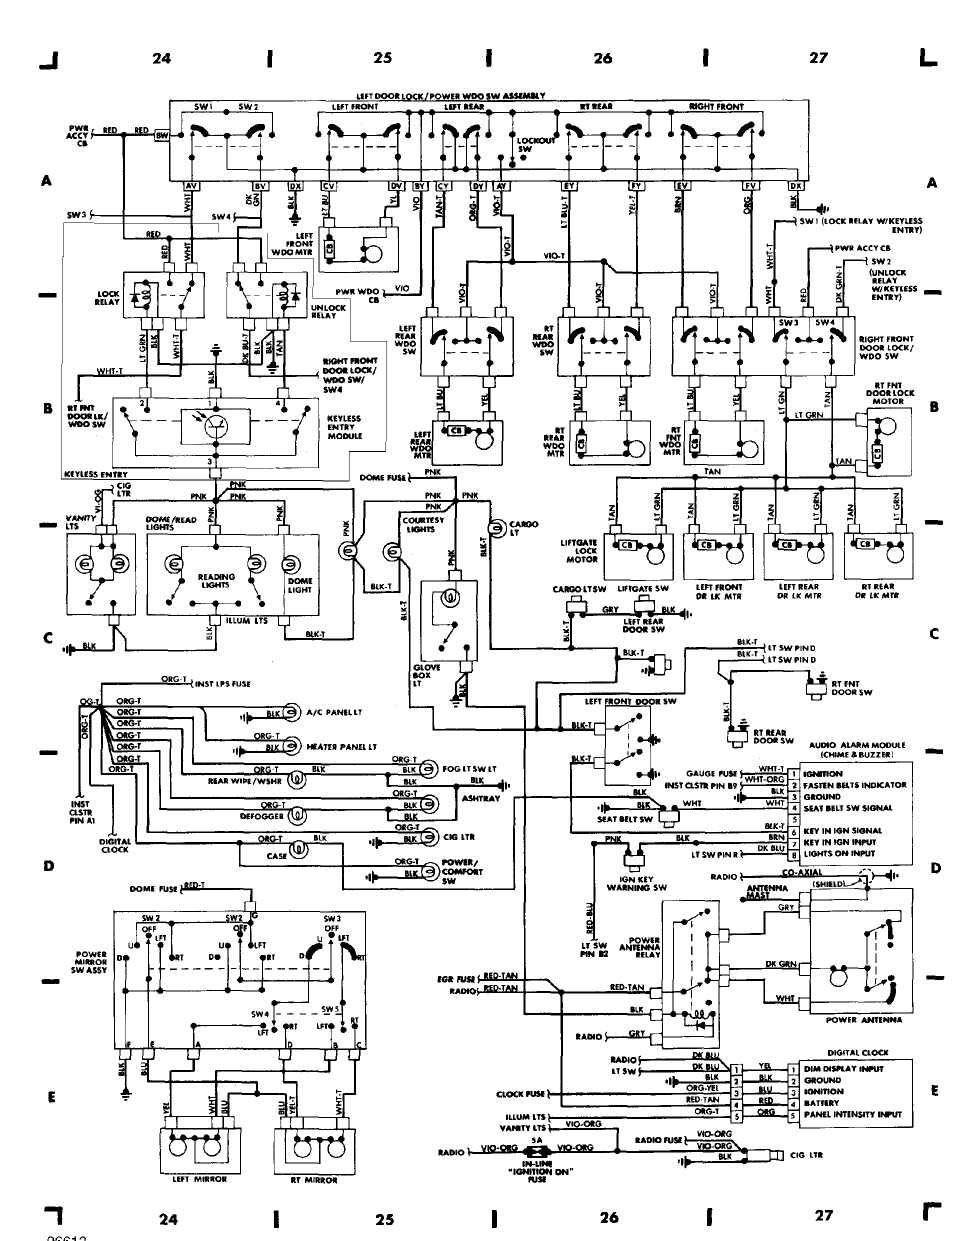 wiring_diagrams_html_61f5e0ad wiring diagrams 1984 1991 jeep cherokee (xj) jeep 1995 jeep cherokee fuse box diagram at bayanpartner.co